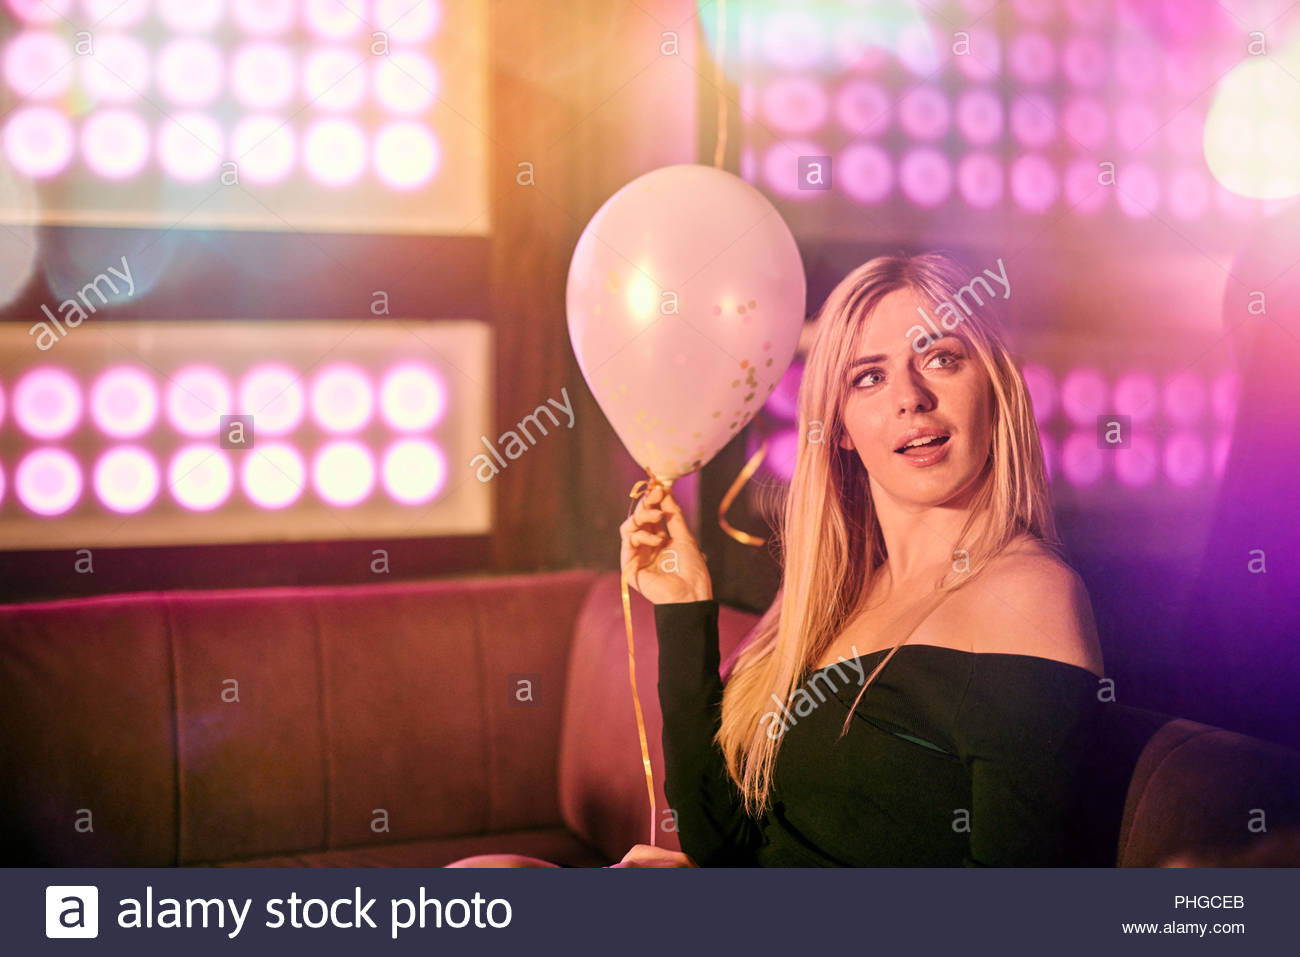 Young woman with balloon at nightclub Stock Photo